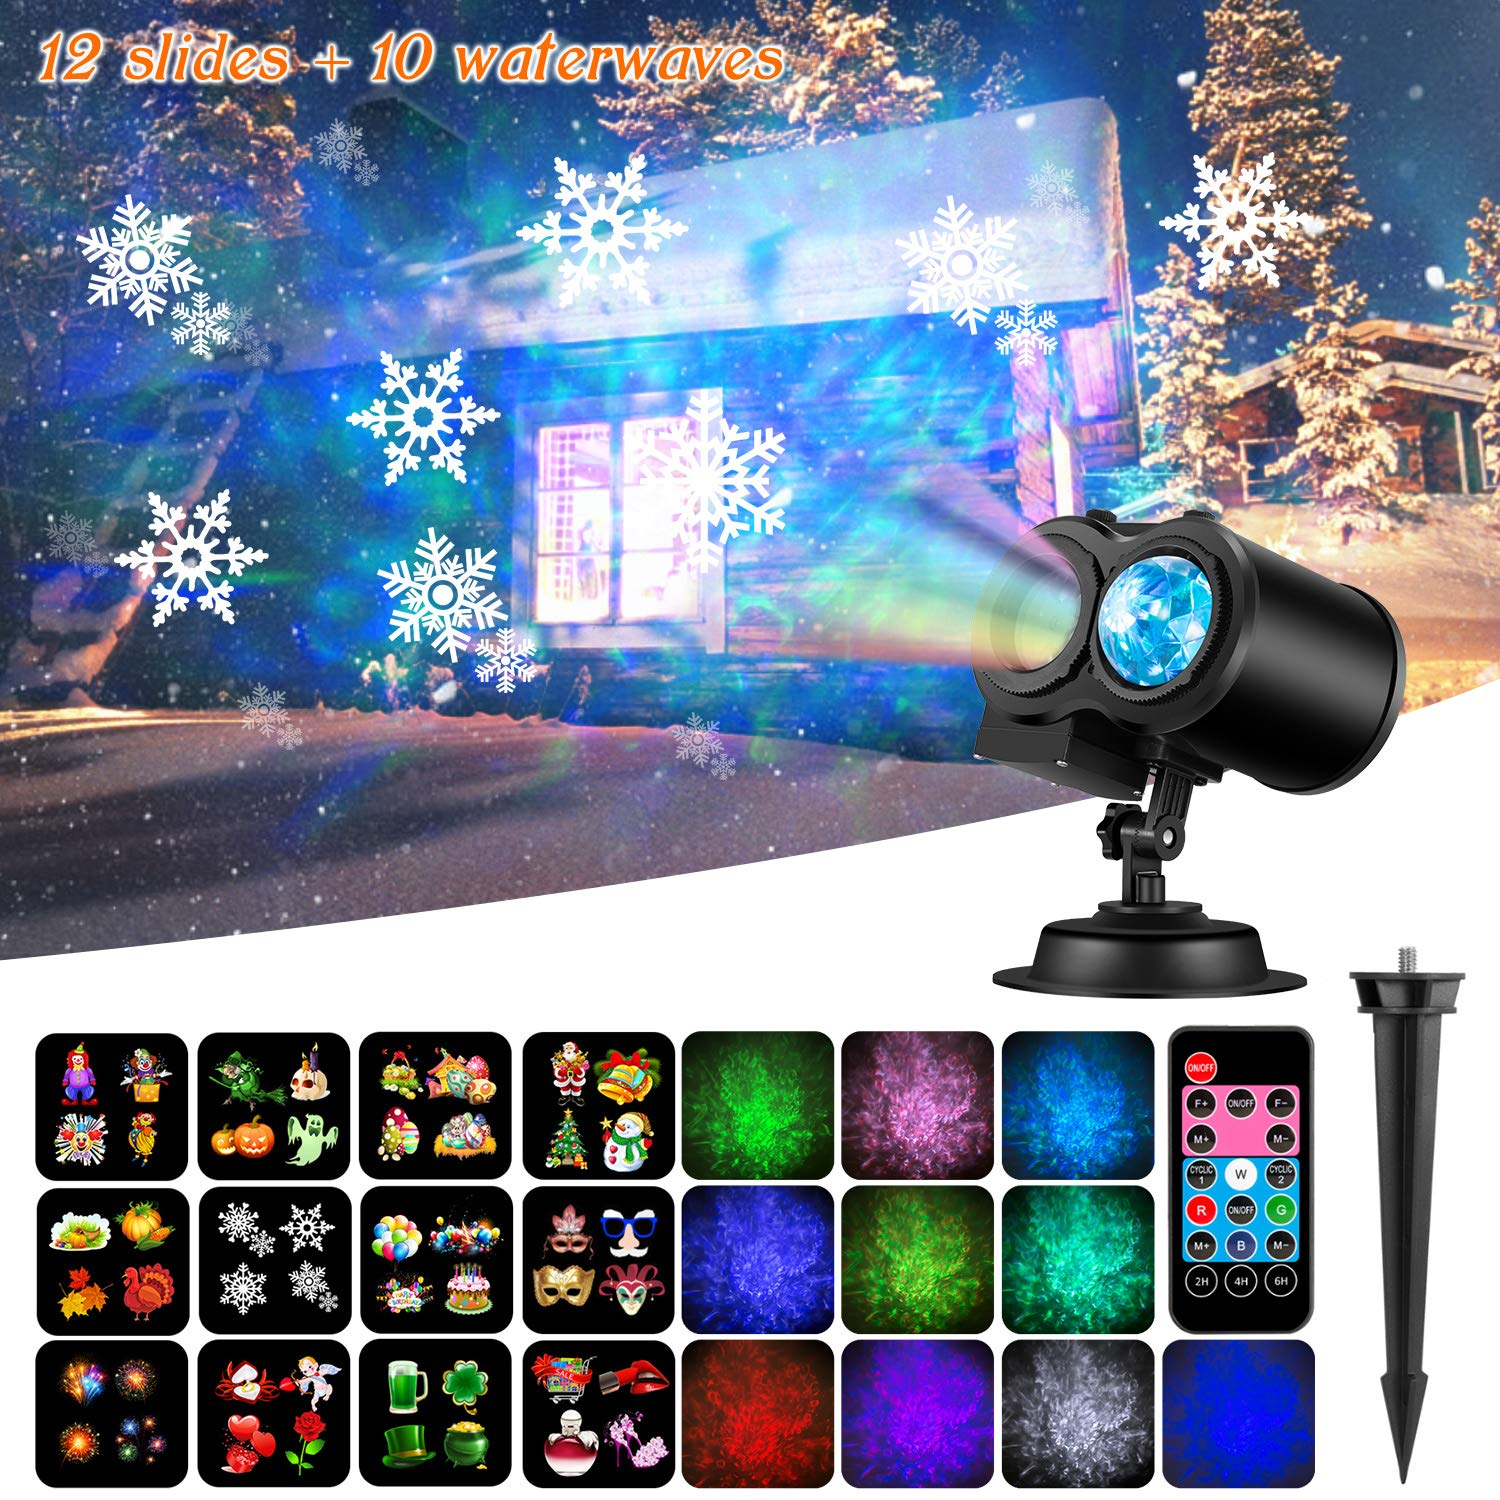 NEXGADGET Christmas Projector Light,2 in 1 Water Wave Light Projector with 12 Slides,Holiday Decoration Light for Party,Birthday,Remote Control Waterproof Outdoor/Indoor by NEXGADGET